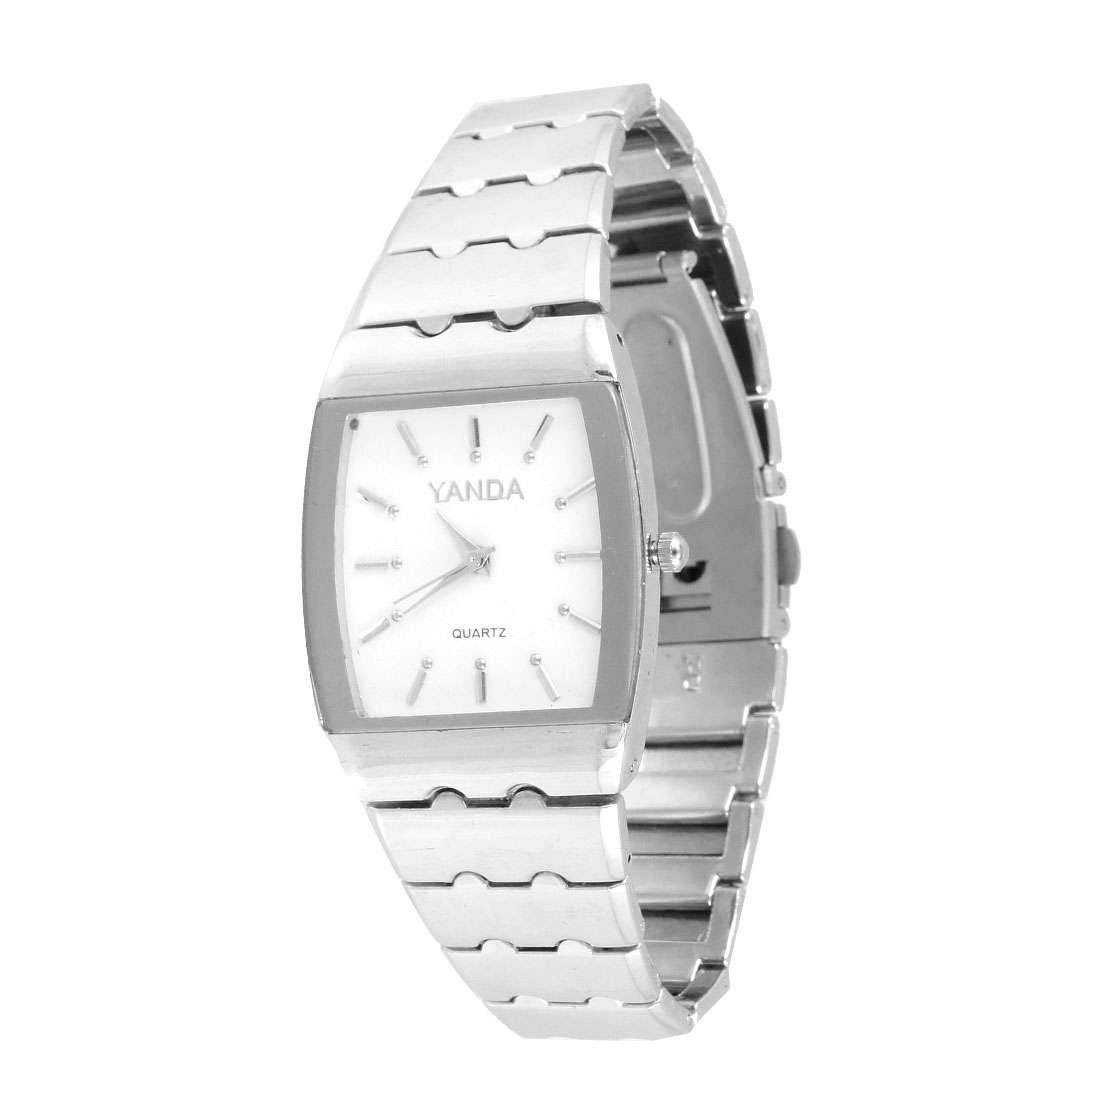 Stainless Steel Band White Rectangular Dial Wrist Watch for Men